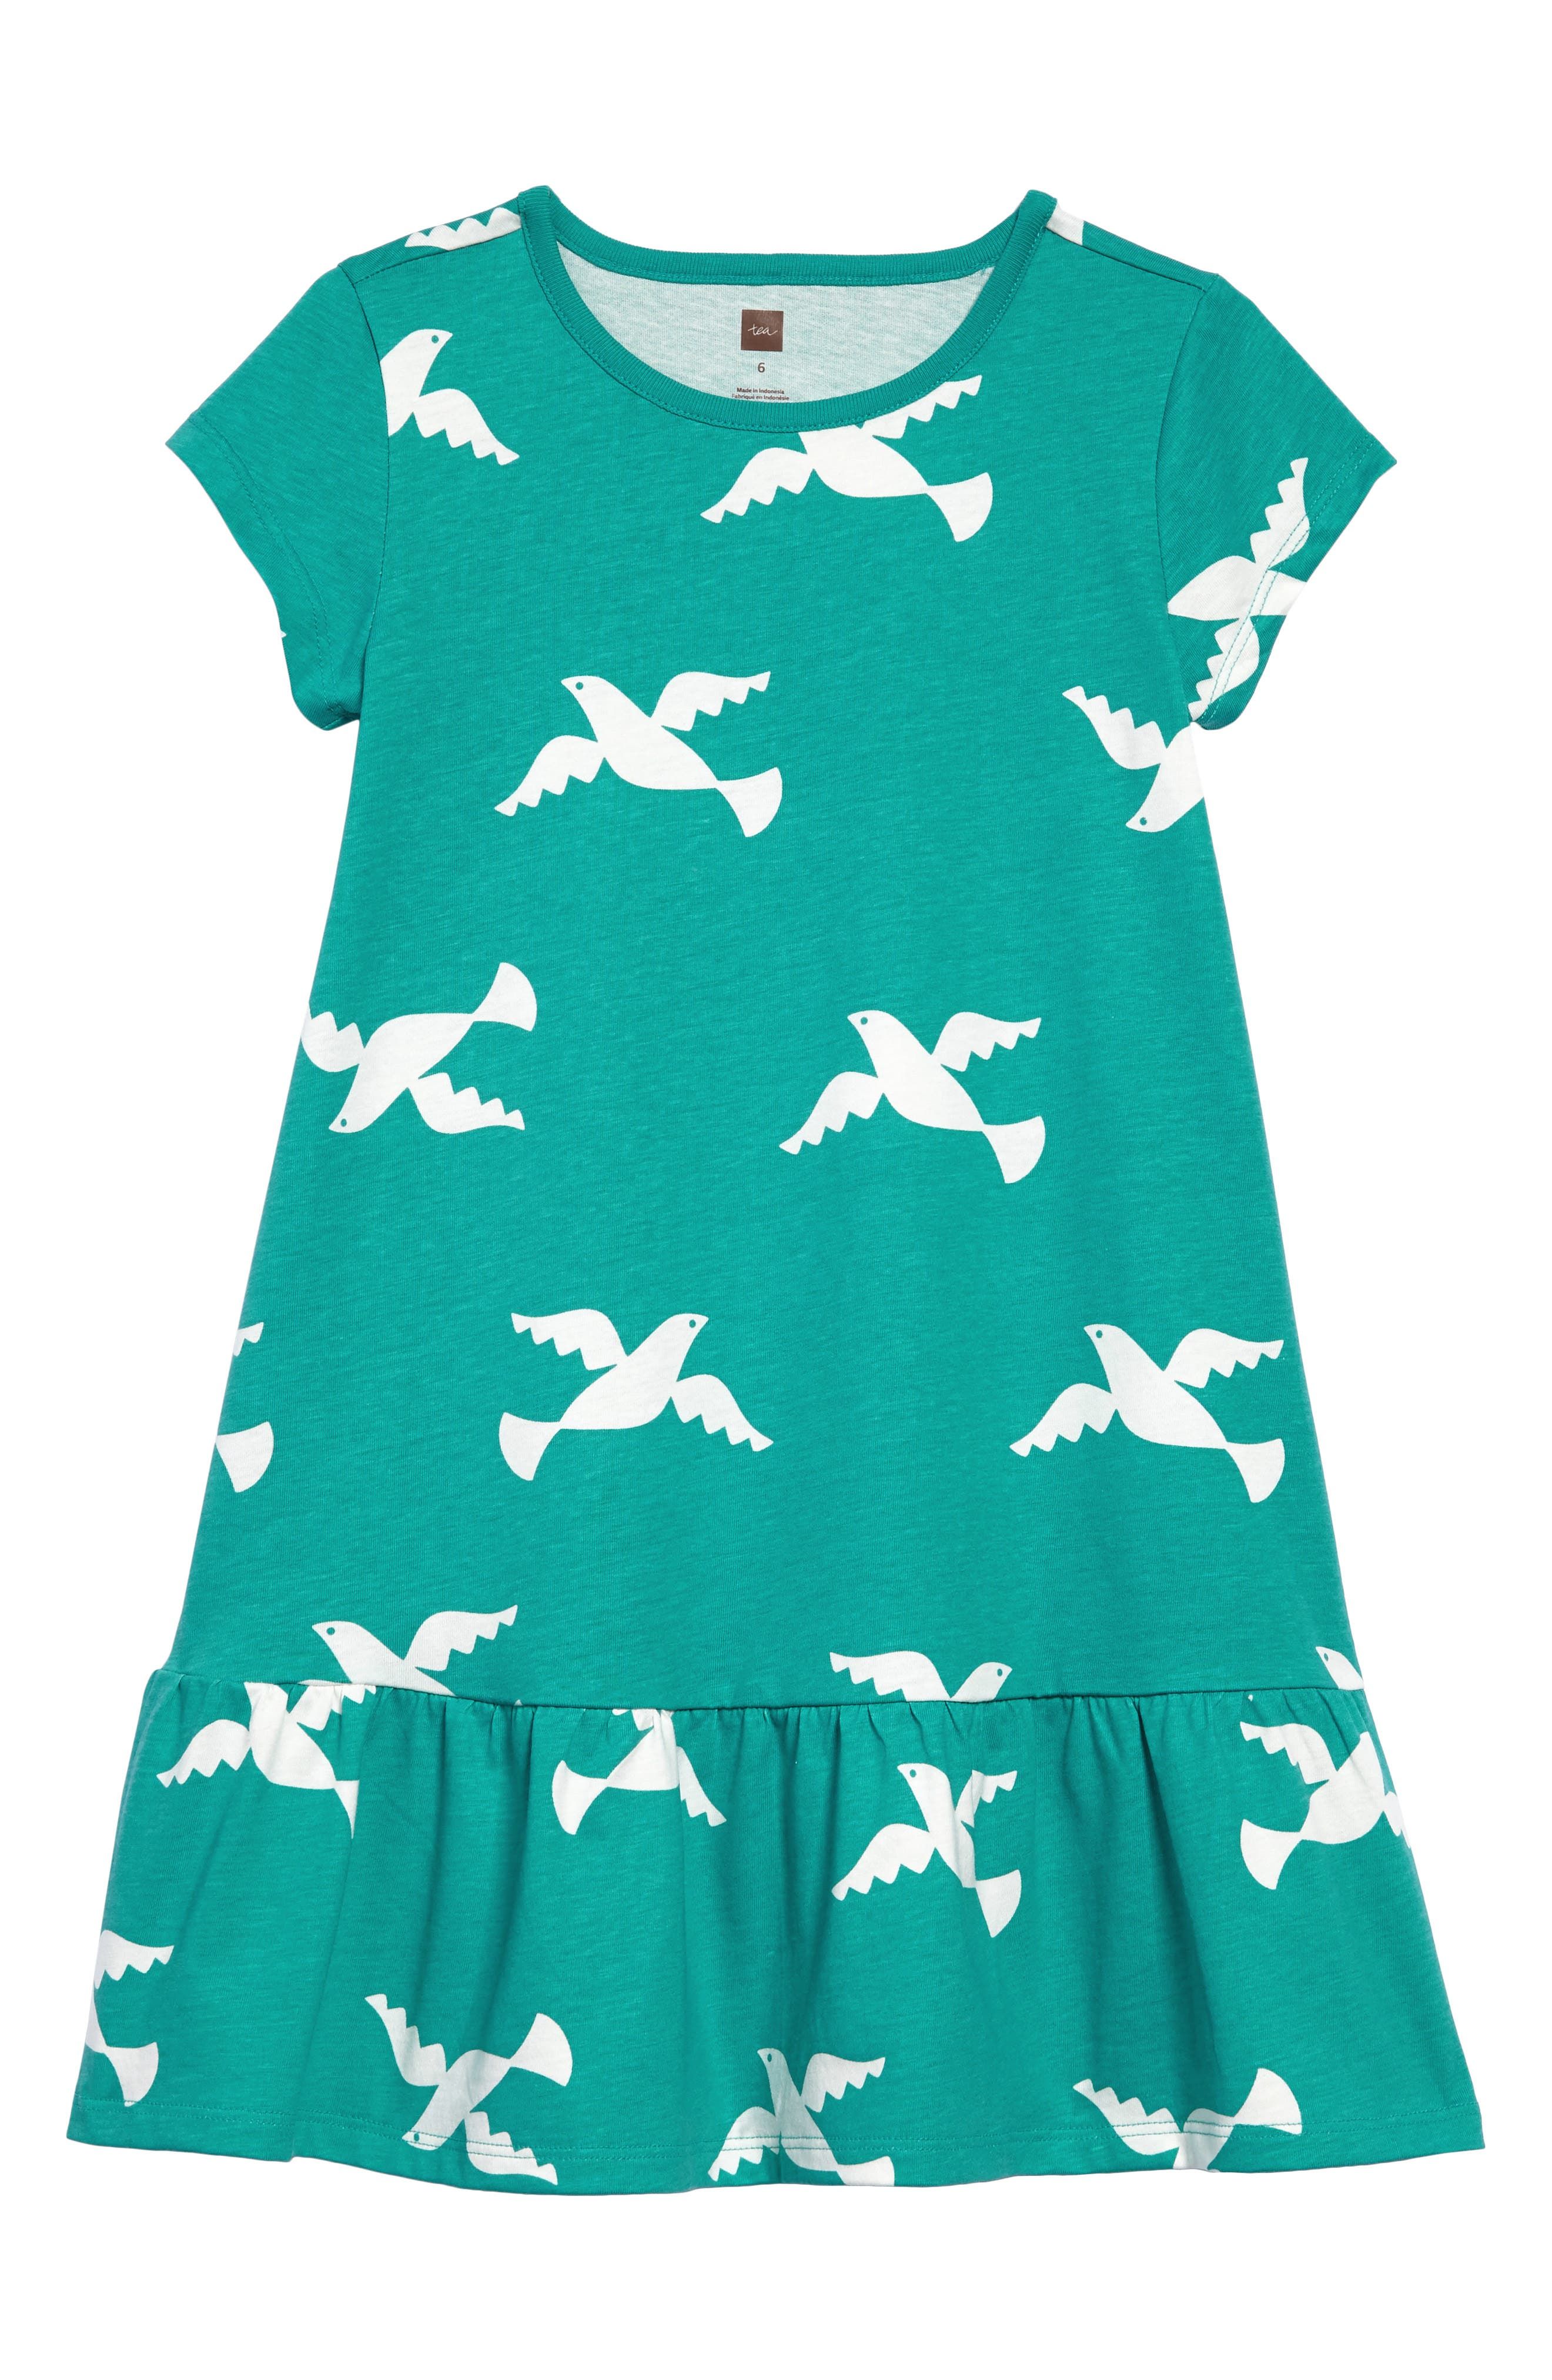 Birds in Flight Ruffle Dress,                             Main thumbnail 1, color,                             Doves